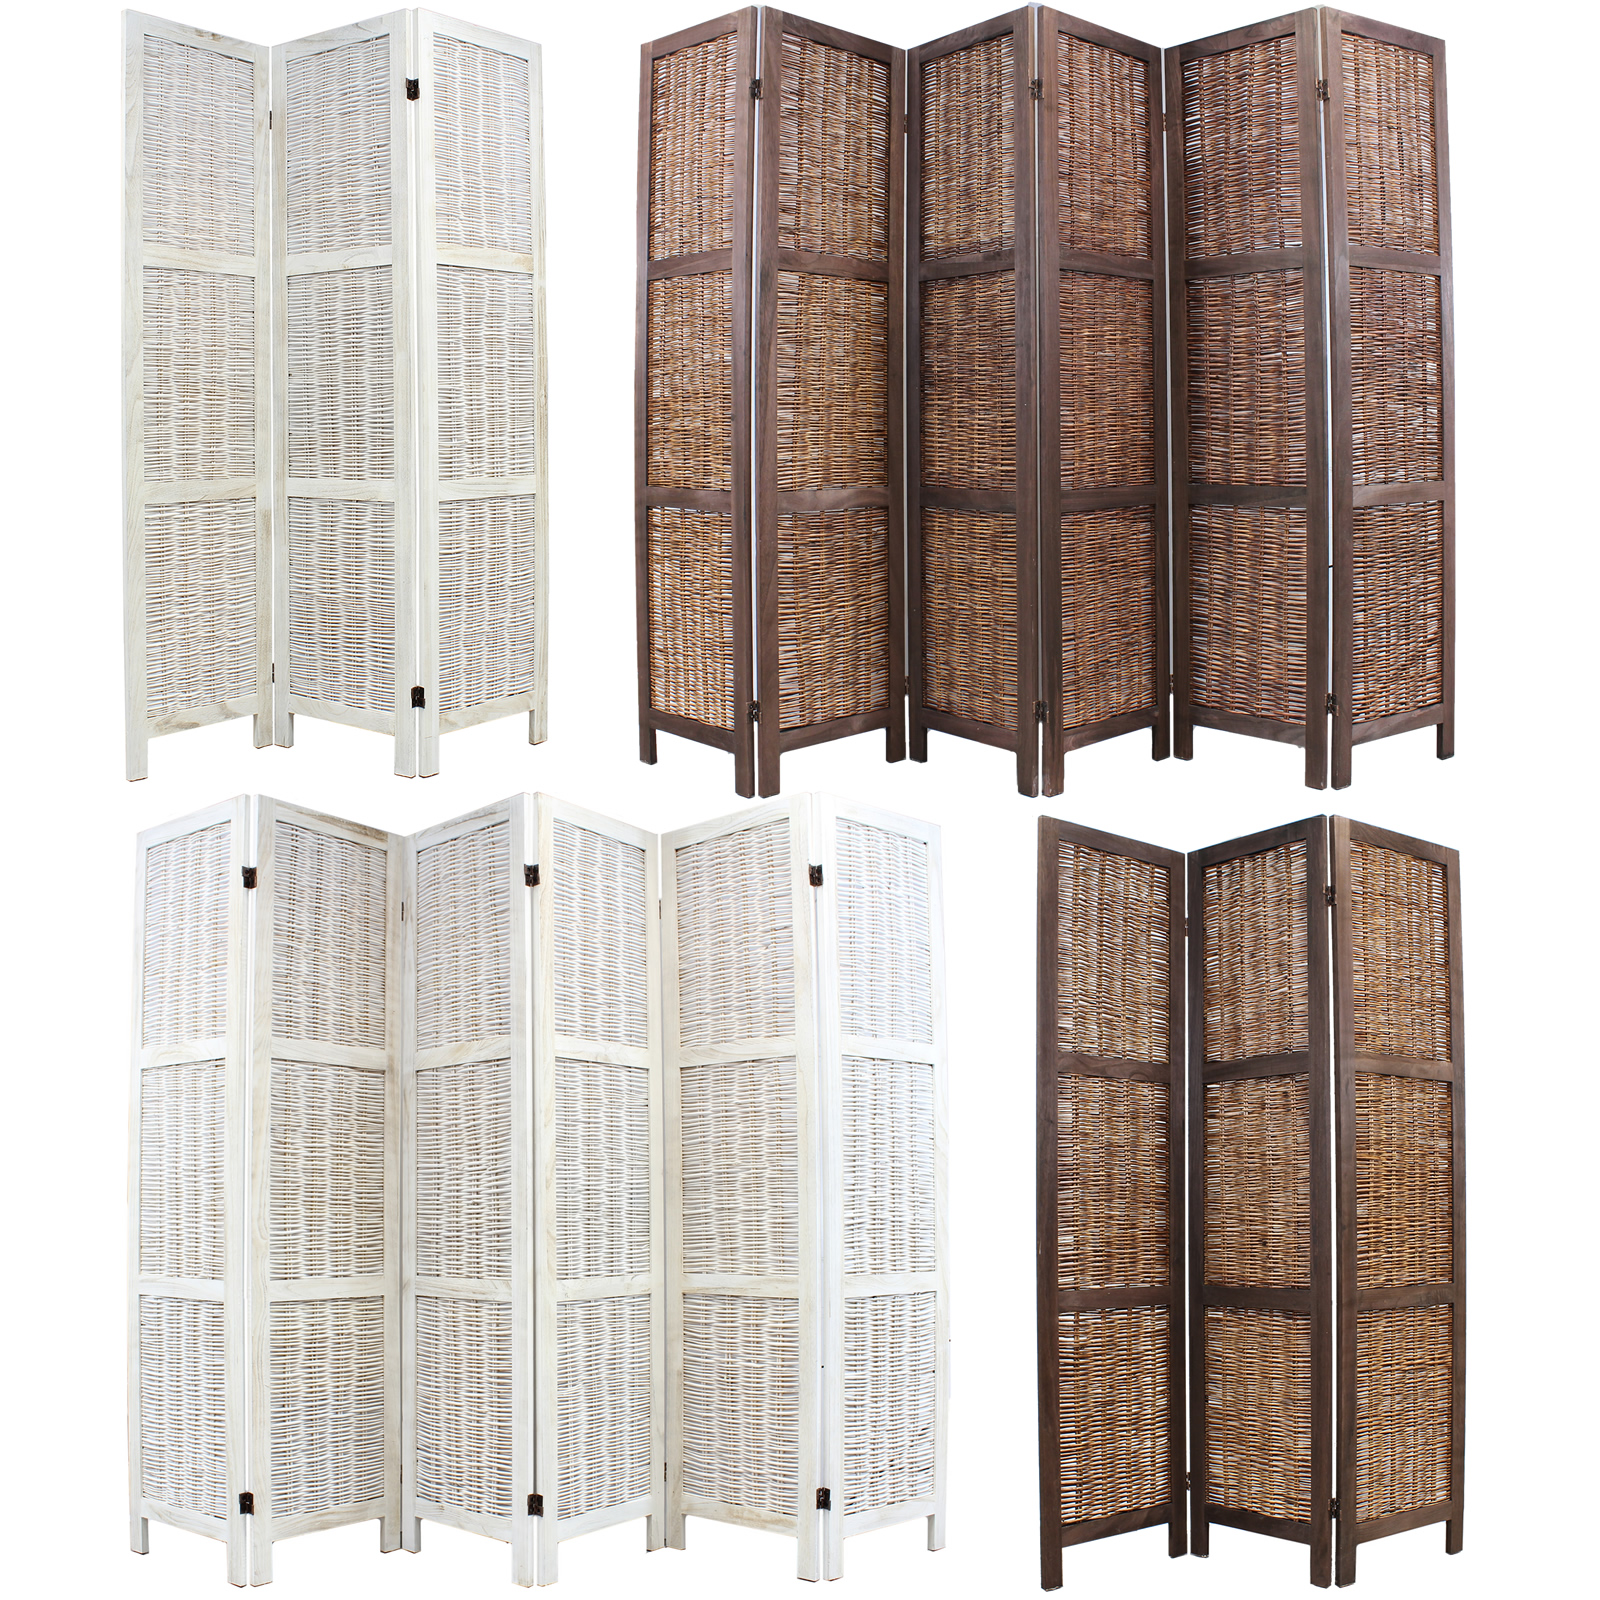 Sentinel Wooden Framed Wicker Room Divider Privacy Screen Parion Shabby Chic Vintage